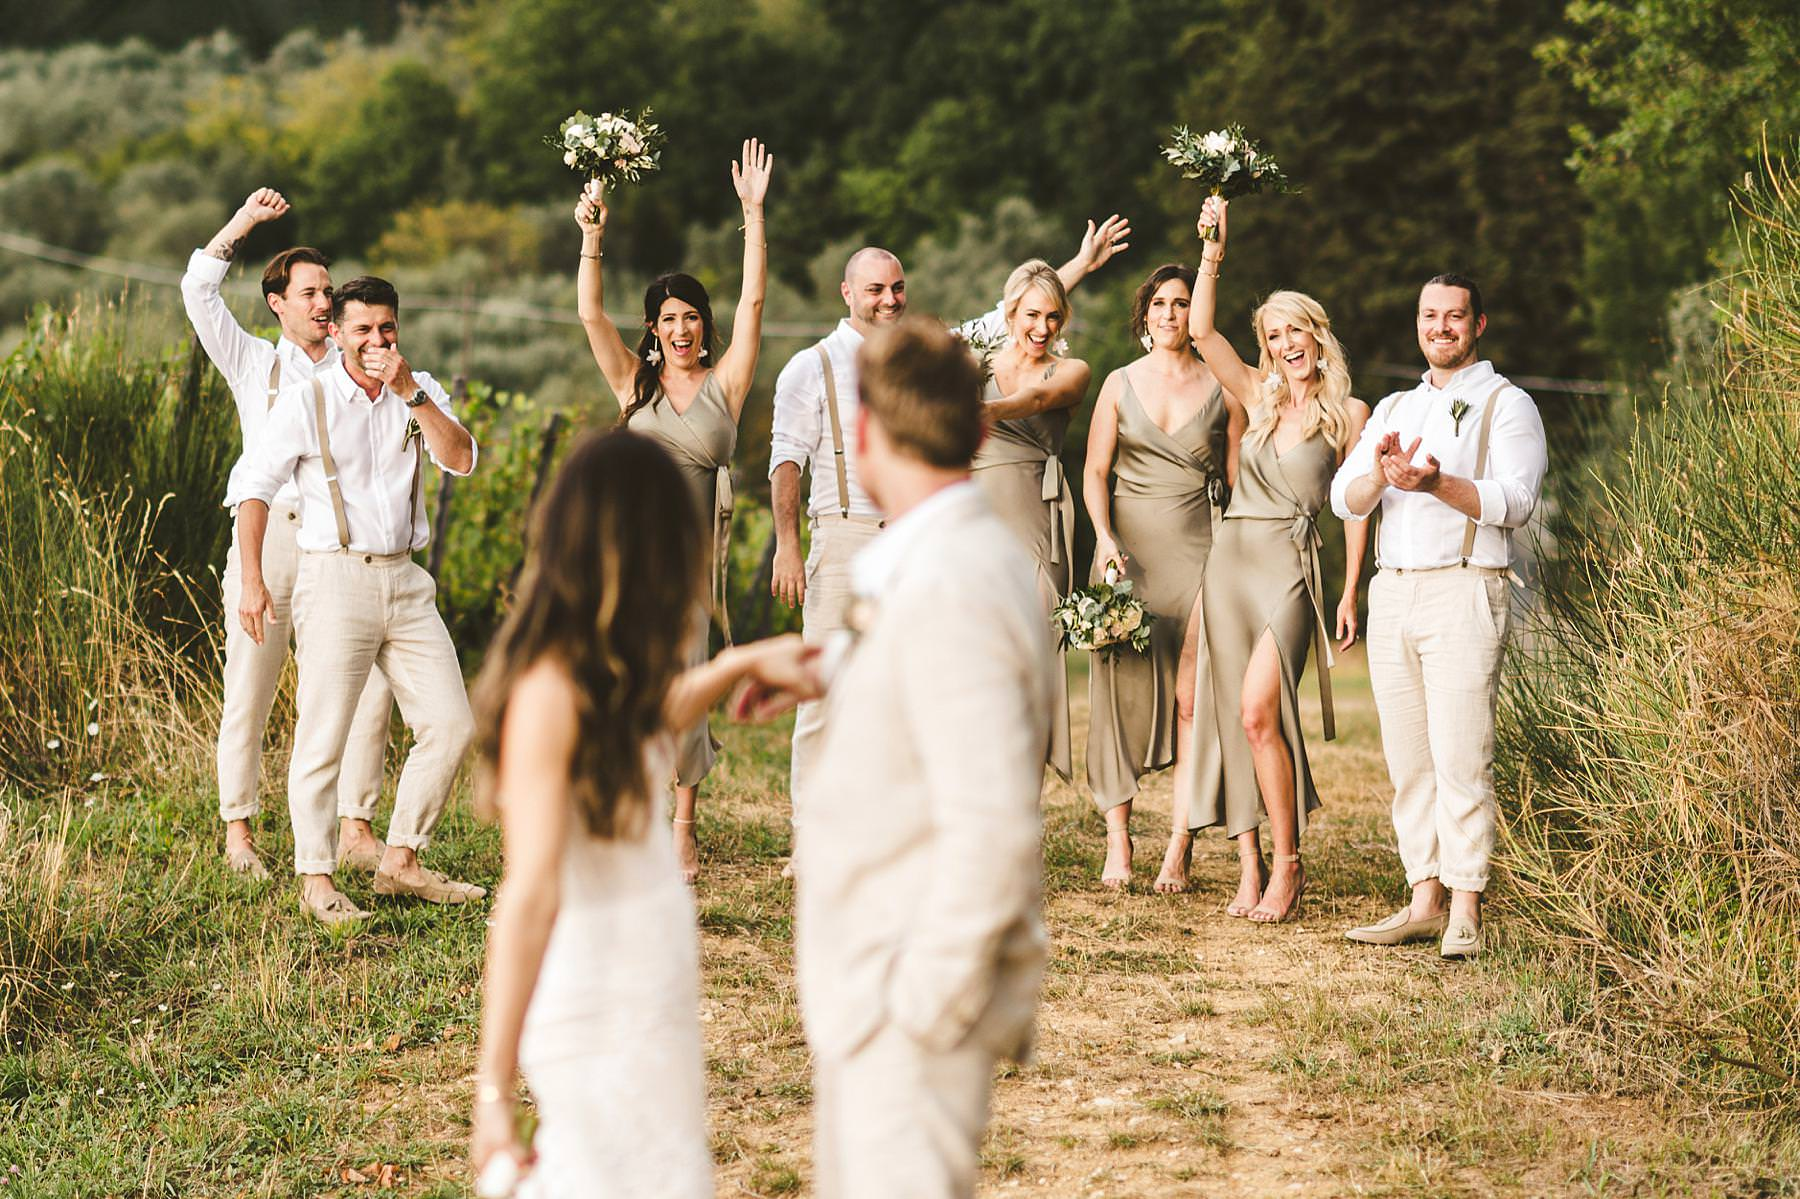 Unforgettable wedding party group candid shoot in the countryside of Chianti in Tuscany near the historic residence of Villa Il Poggiale